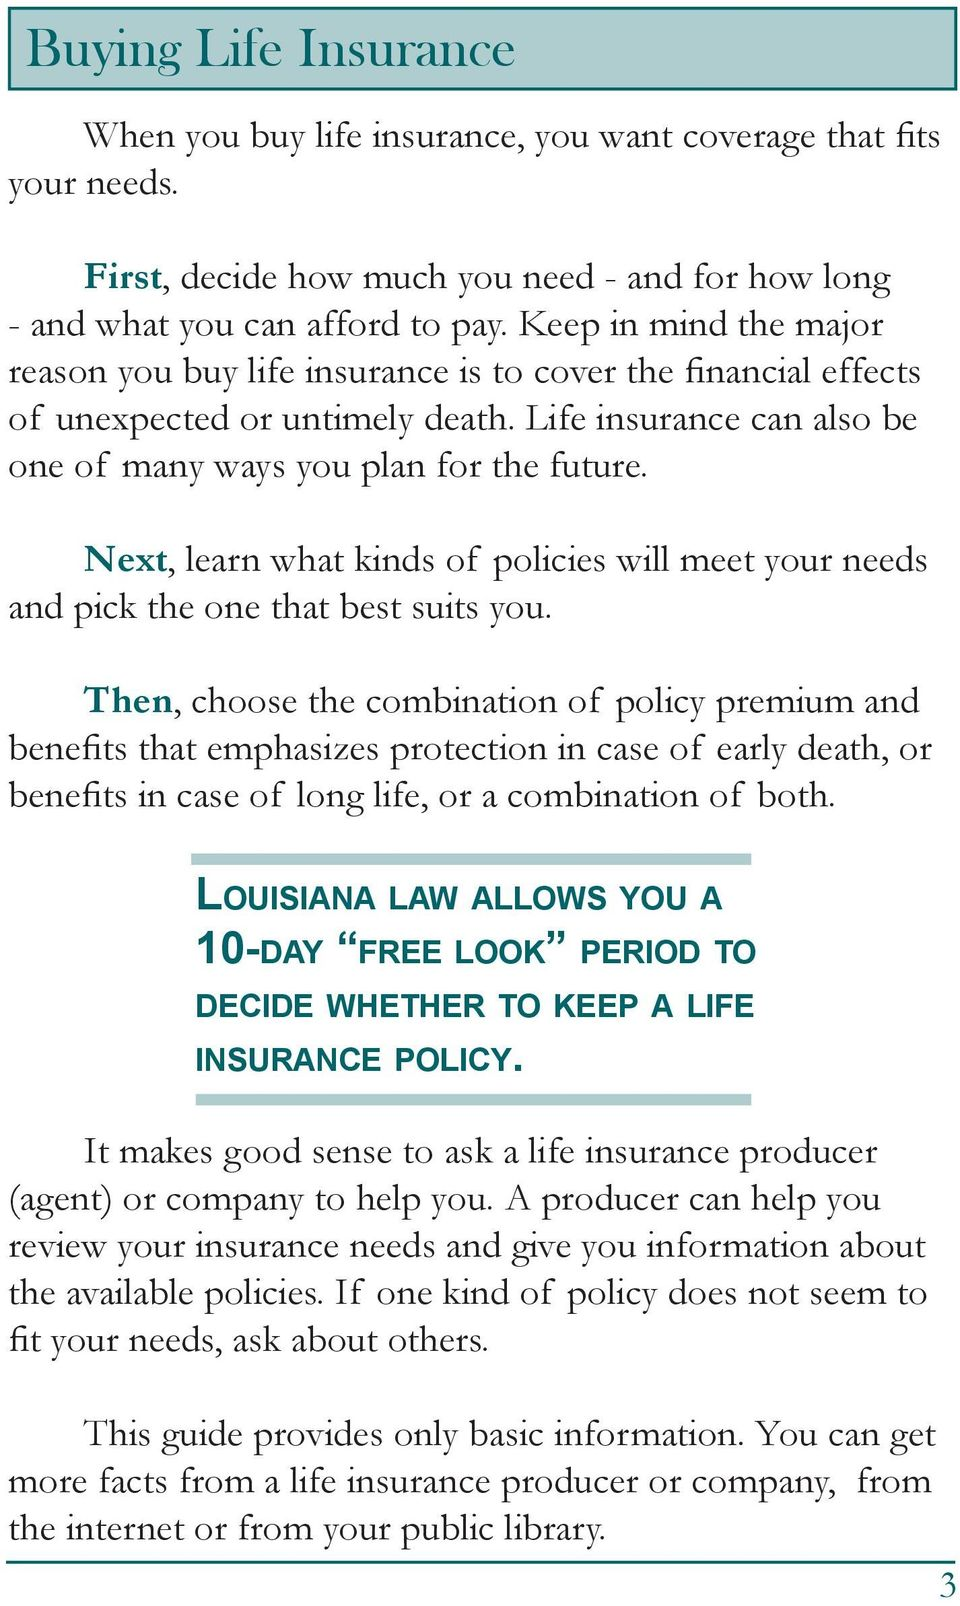 Next, learn what kinds of policies will meet your needs and pick the one that best suits you.